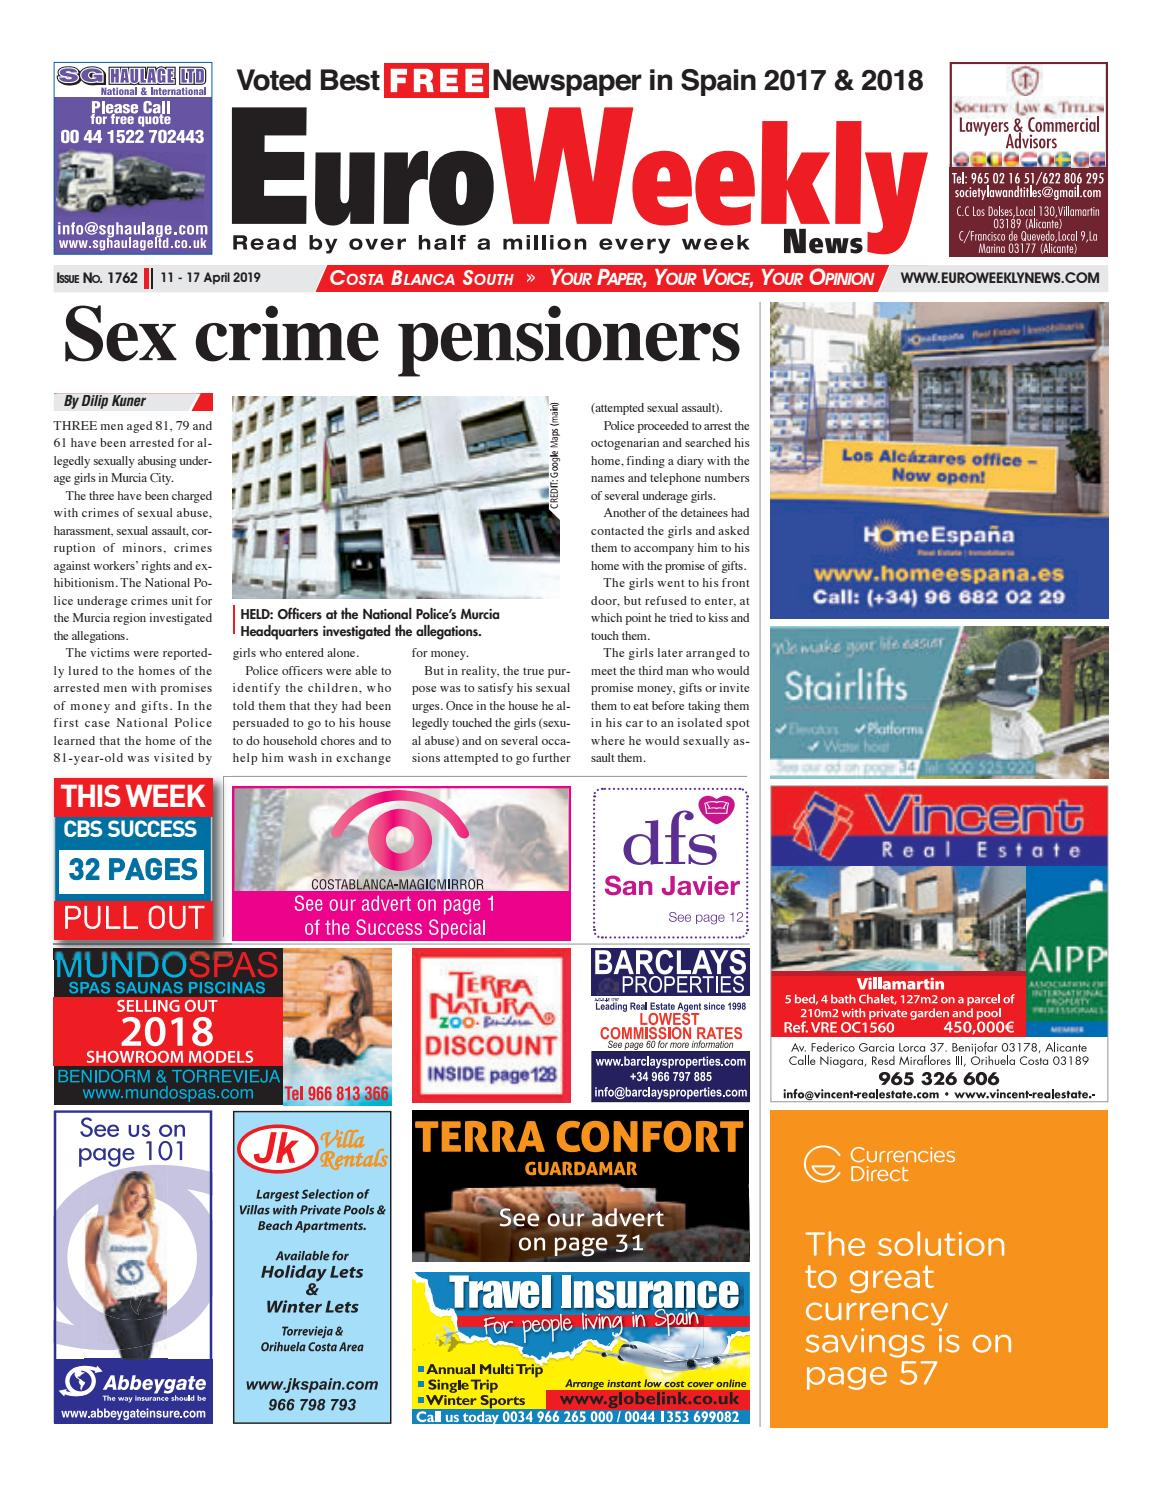 Euro Weekly News Costa Blanca South 11 17 April 2019